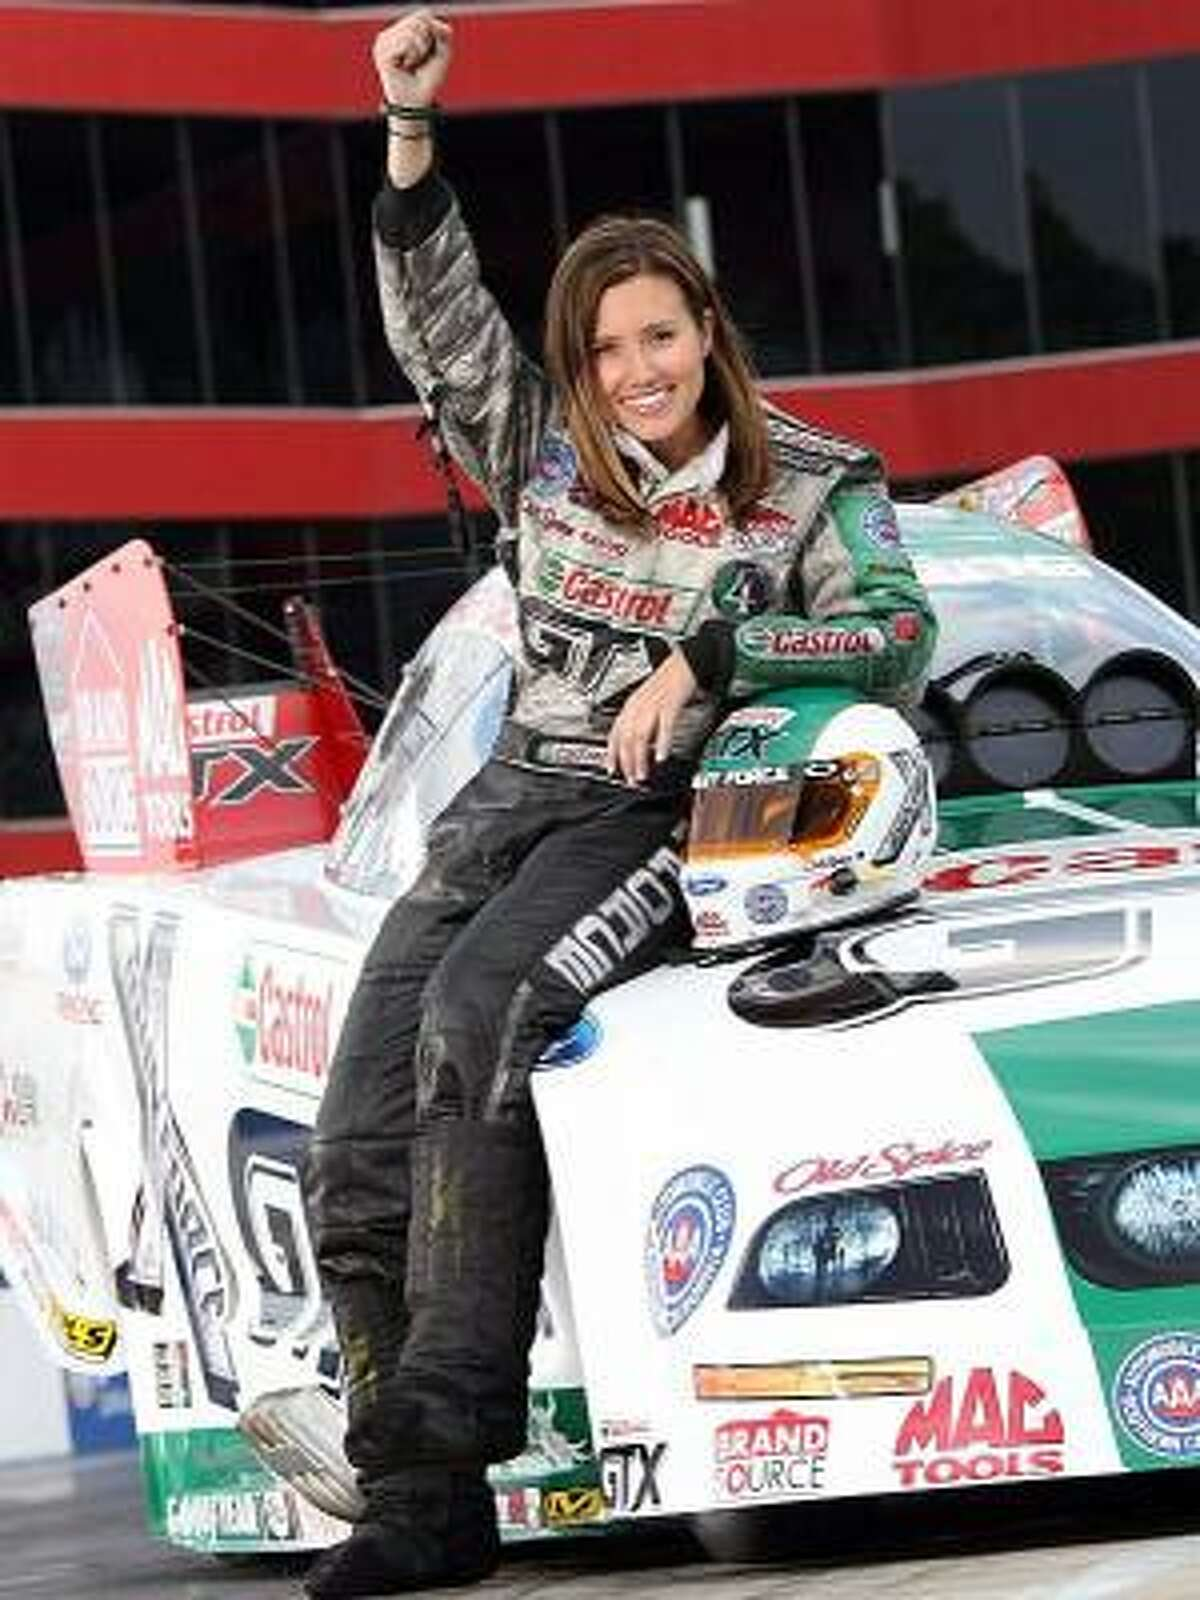 No. 19 - Ashley Force, NHRA racer Nationality: American (Anaheim, Calif.) Age: 27 A-M says: